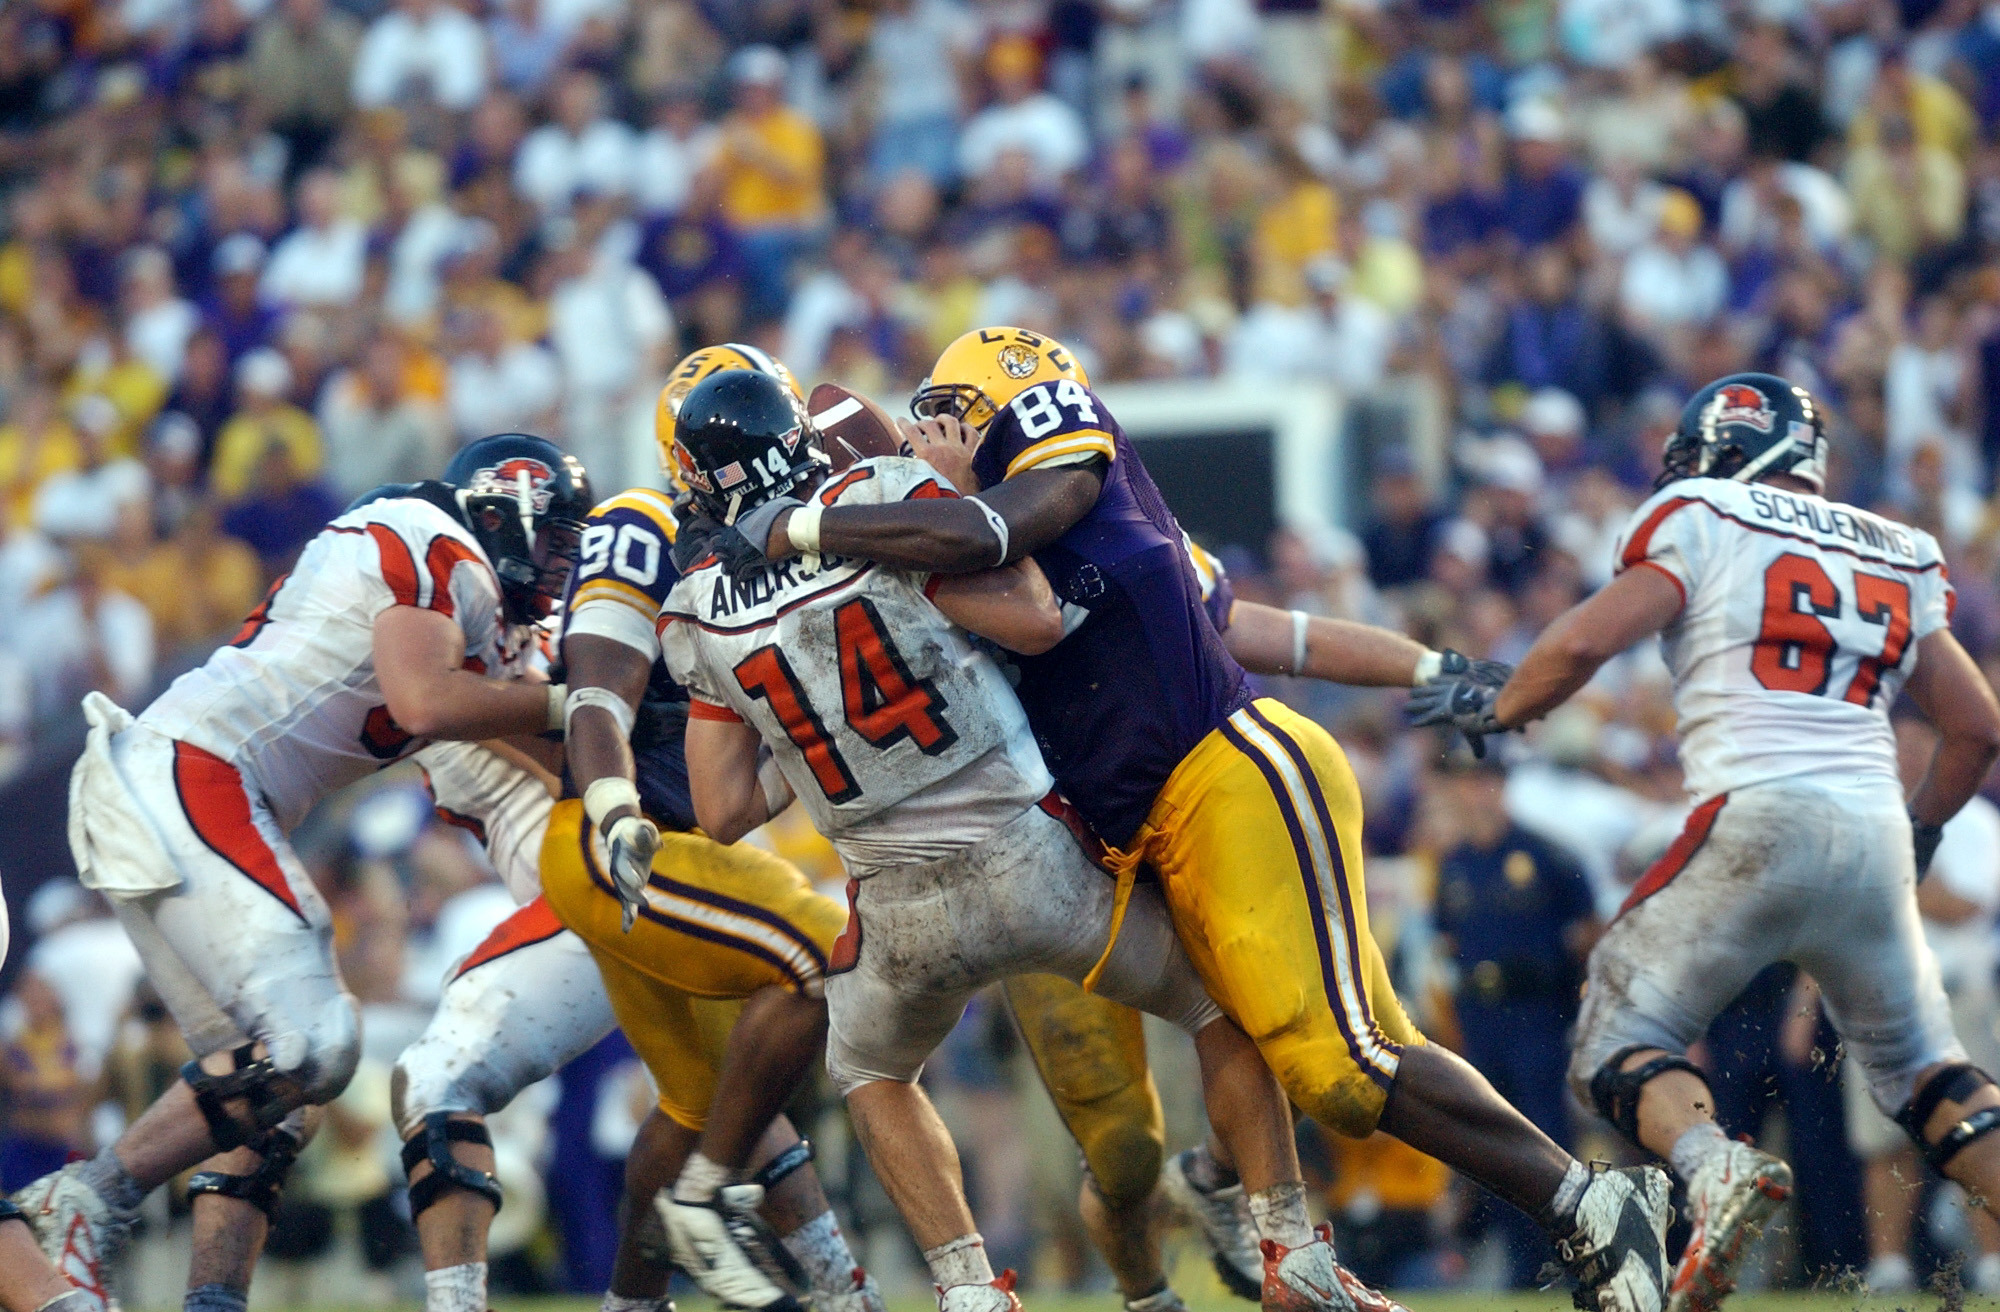 Marcus Spears #84 defensive end of the Louisiana State University Tigers makes a tackle during a game against the Oregon State Beavers